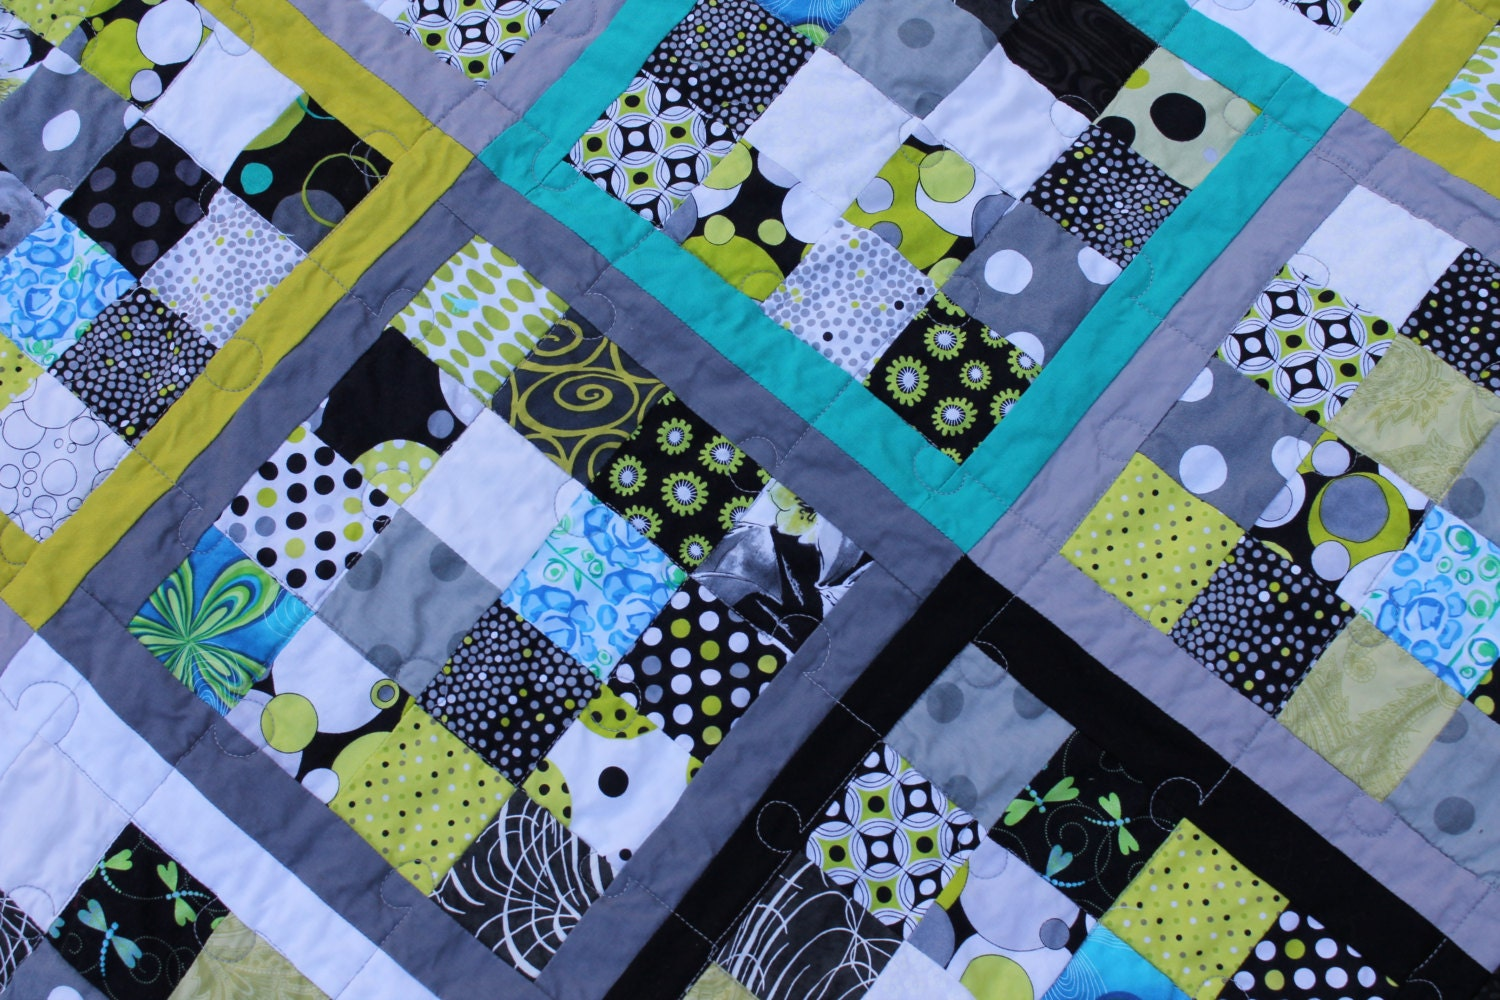 Fun Scrap Lap Quilt in Lime Turquoise Black Gray White Handmade